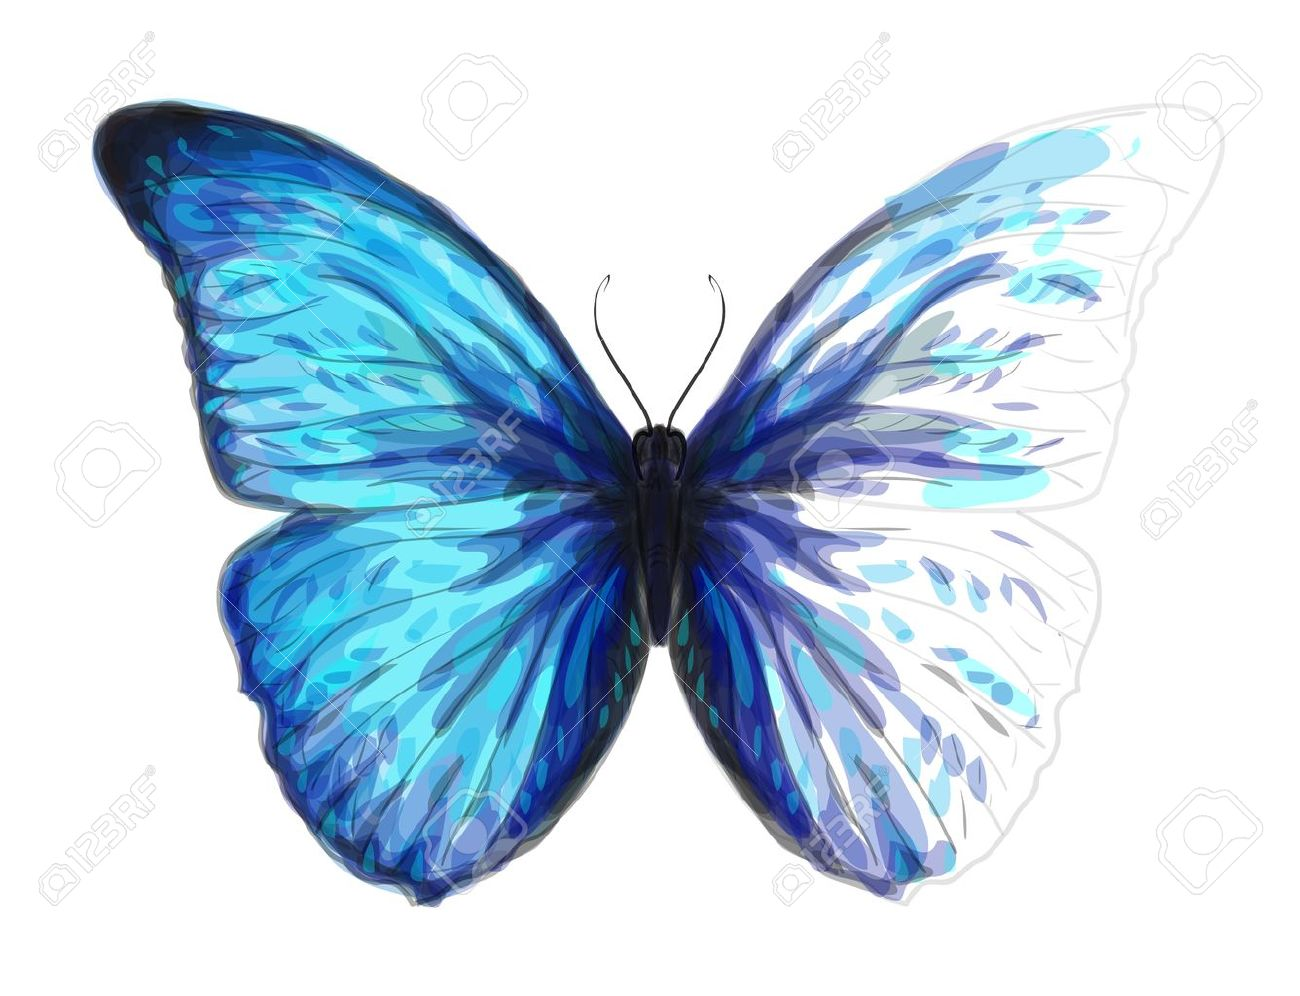 Butterfly  Morpho Anaxibia  Unfinished Watercolor drawing imitation Stock Vector - 13951287